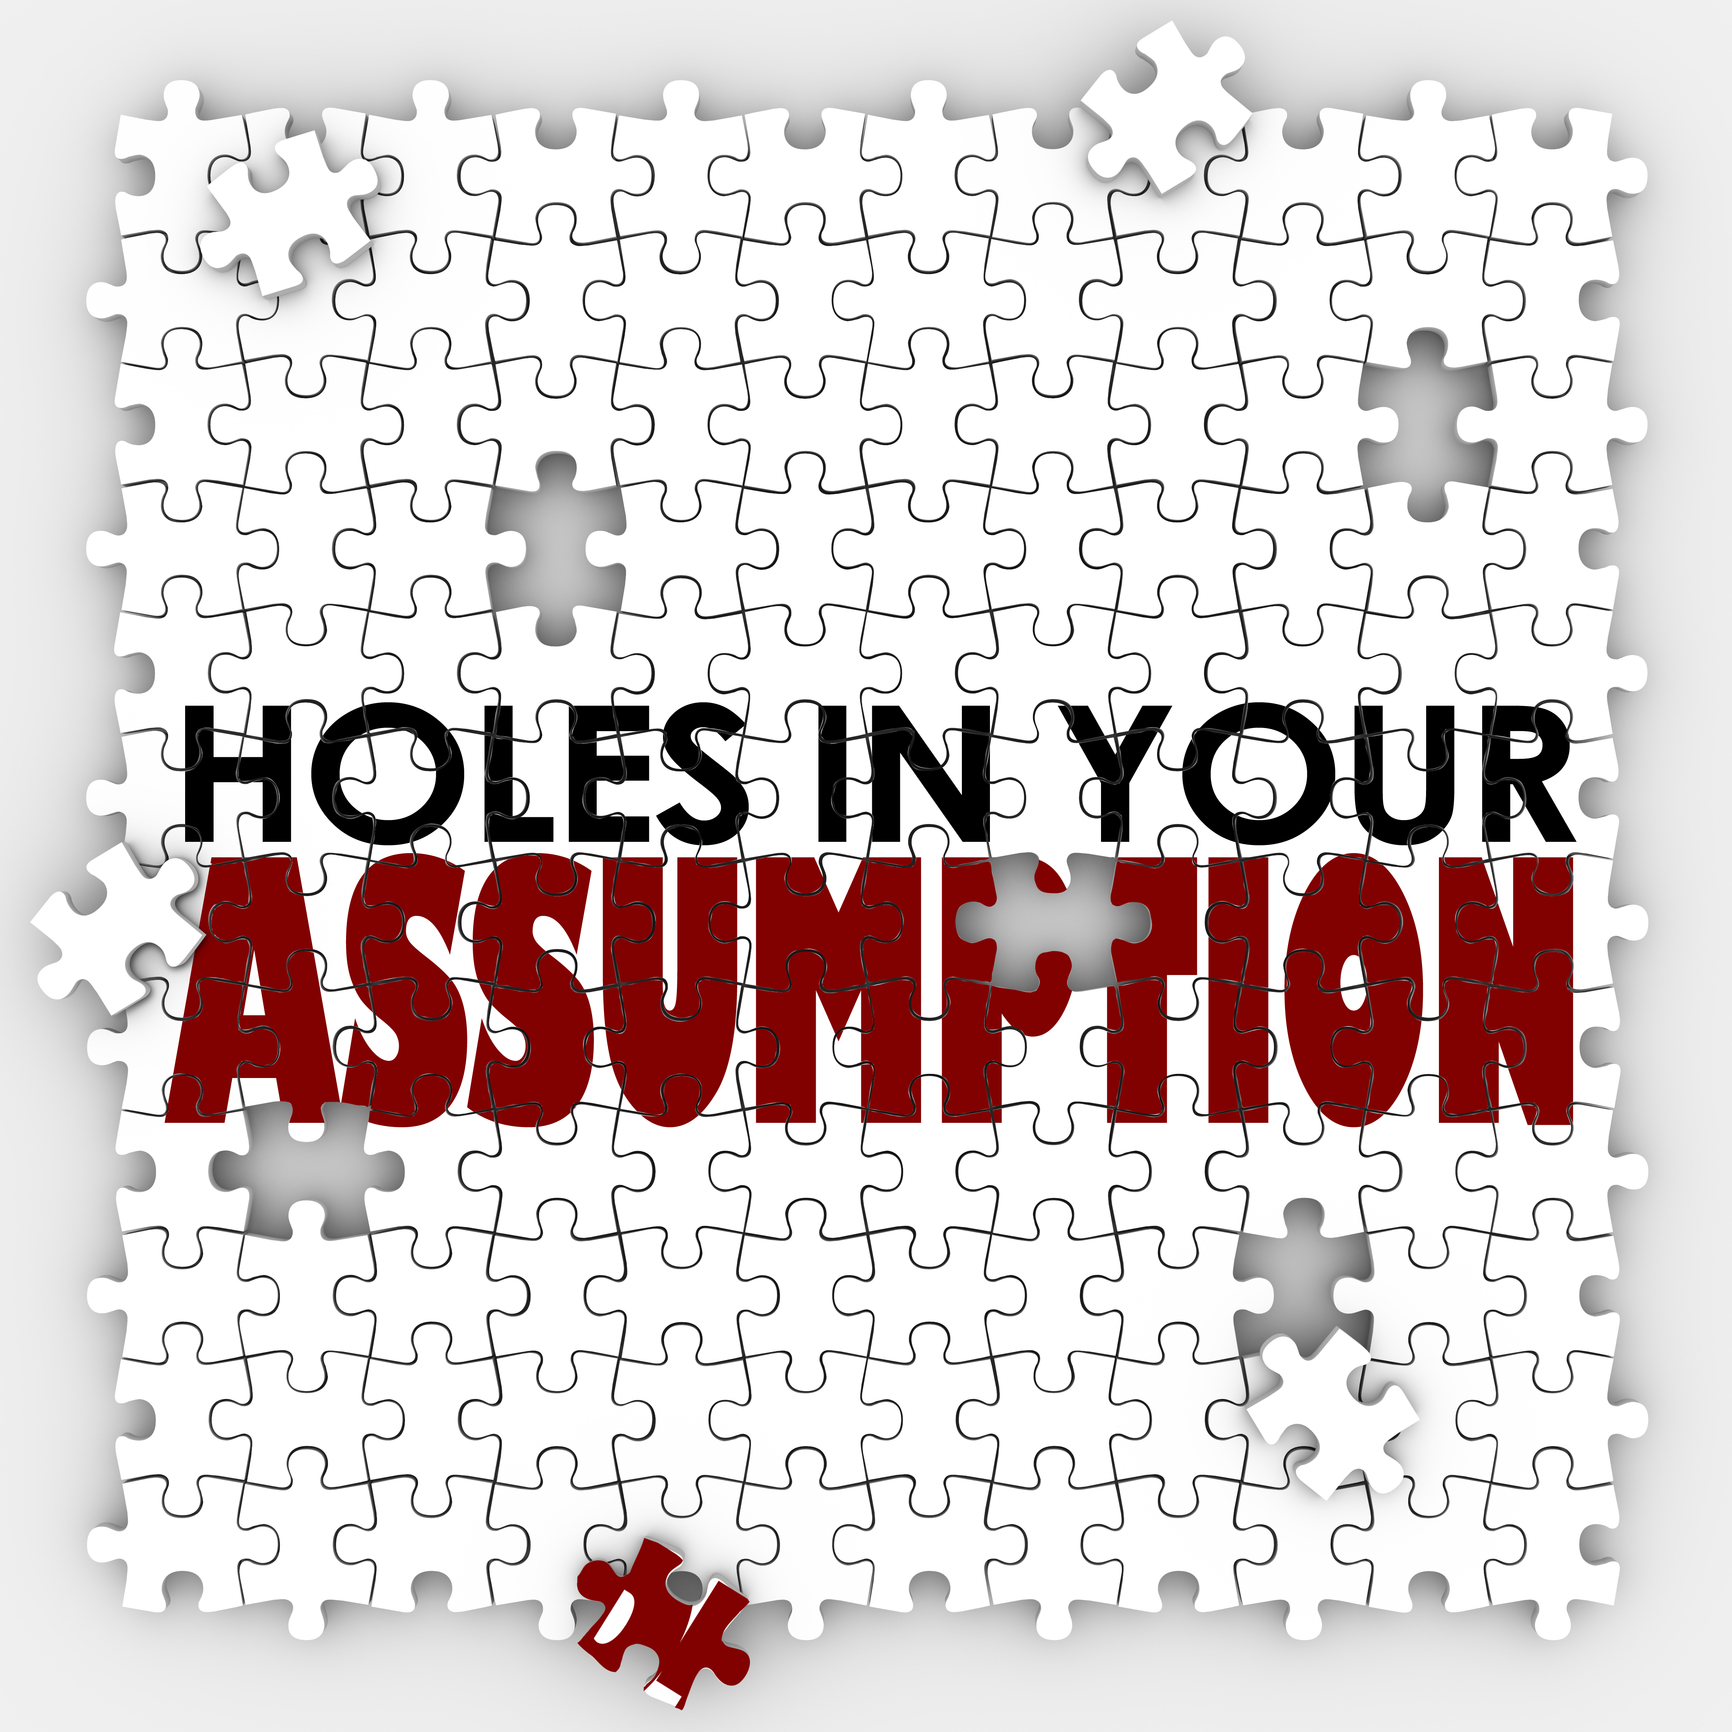 Hole In Your Assumption Puzzle Pieces Bad Wrong Guess